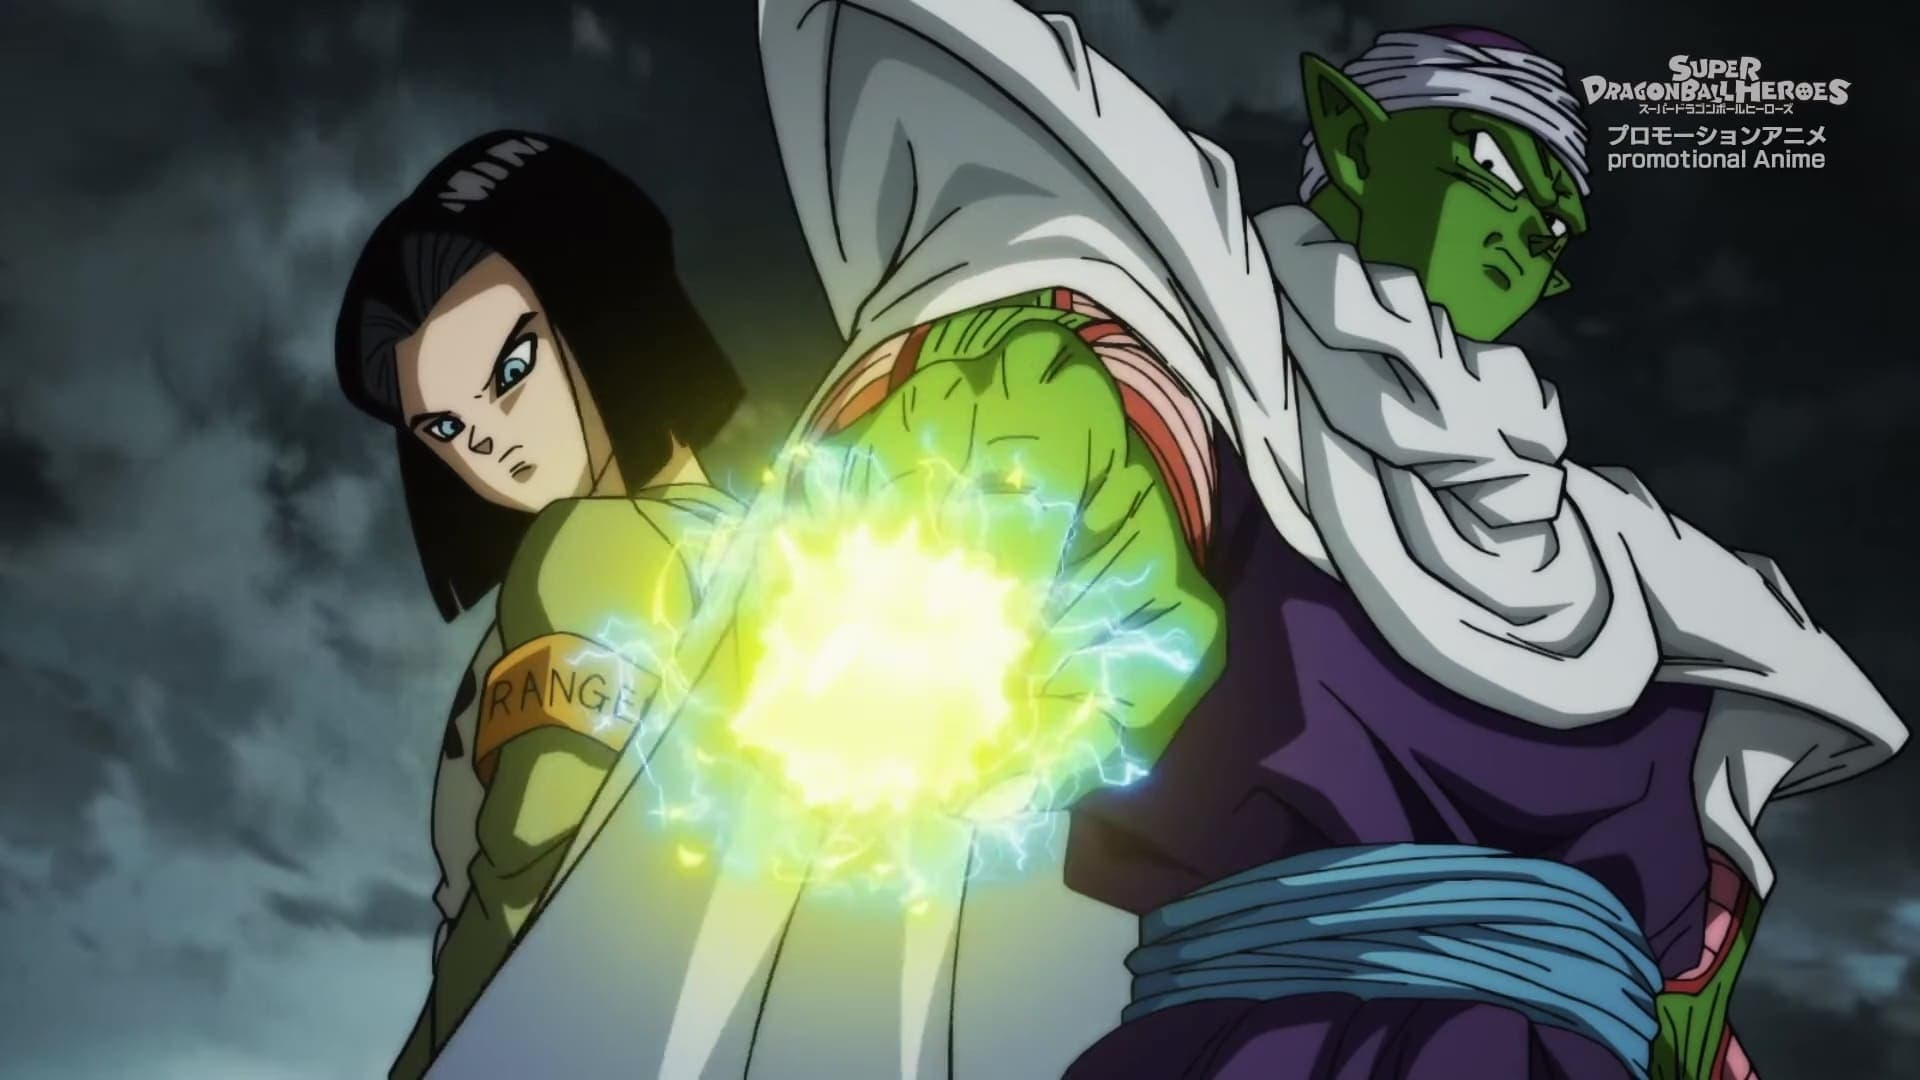 Super Dragon Ball Heroes Season 2 :Episode 7  Super Hearts Joins the Fight! An All-Out Earth-Shaking Battle!